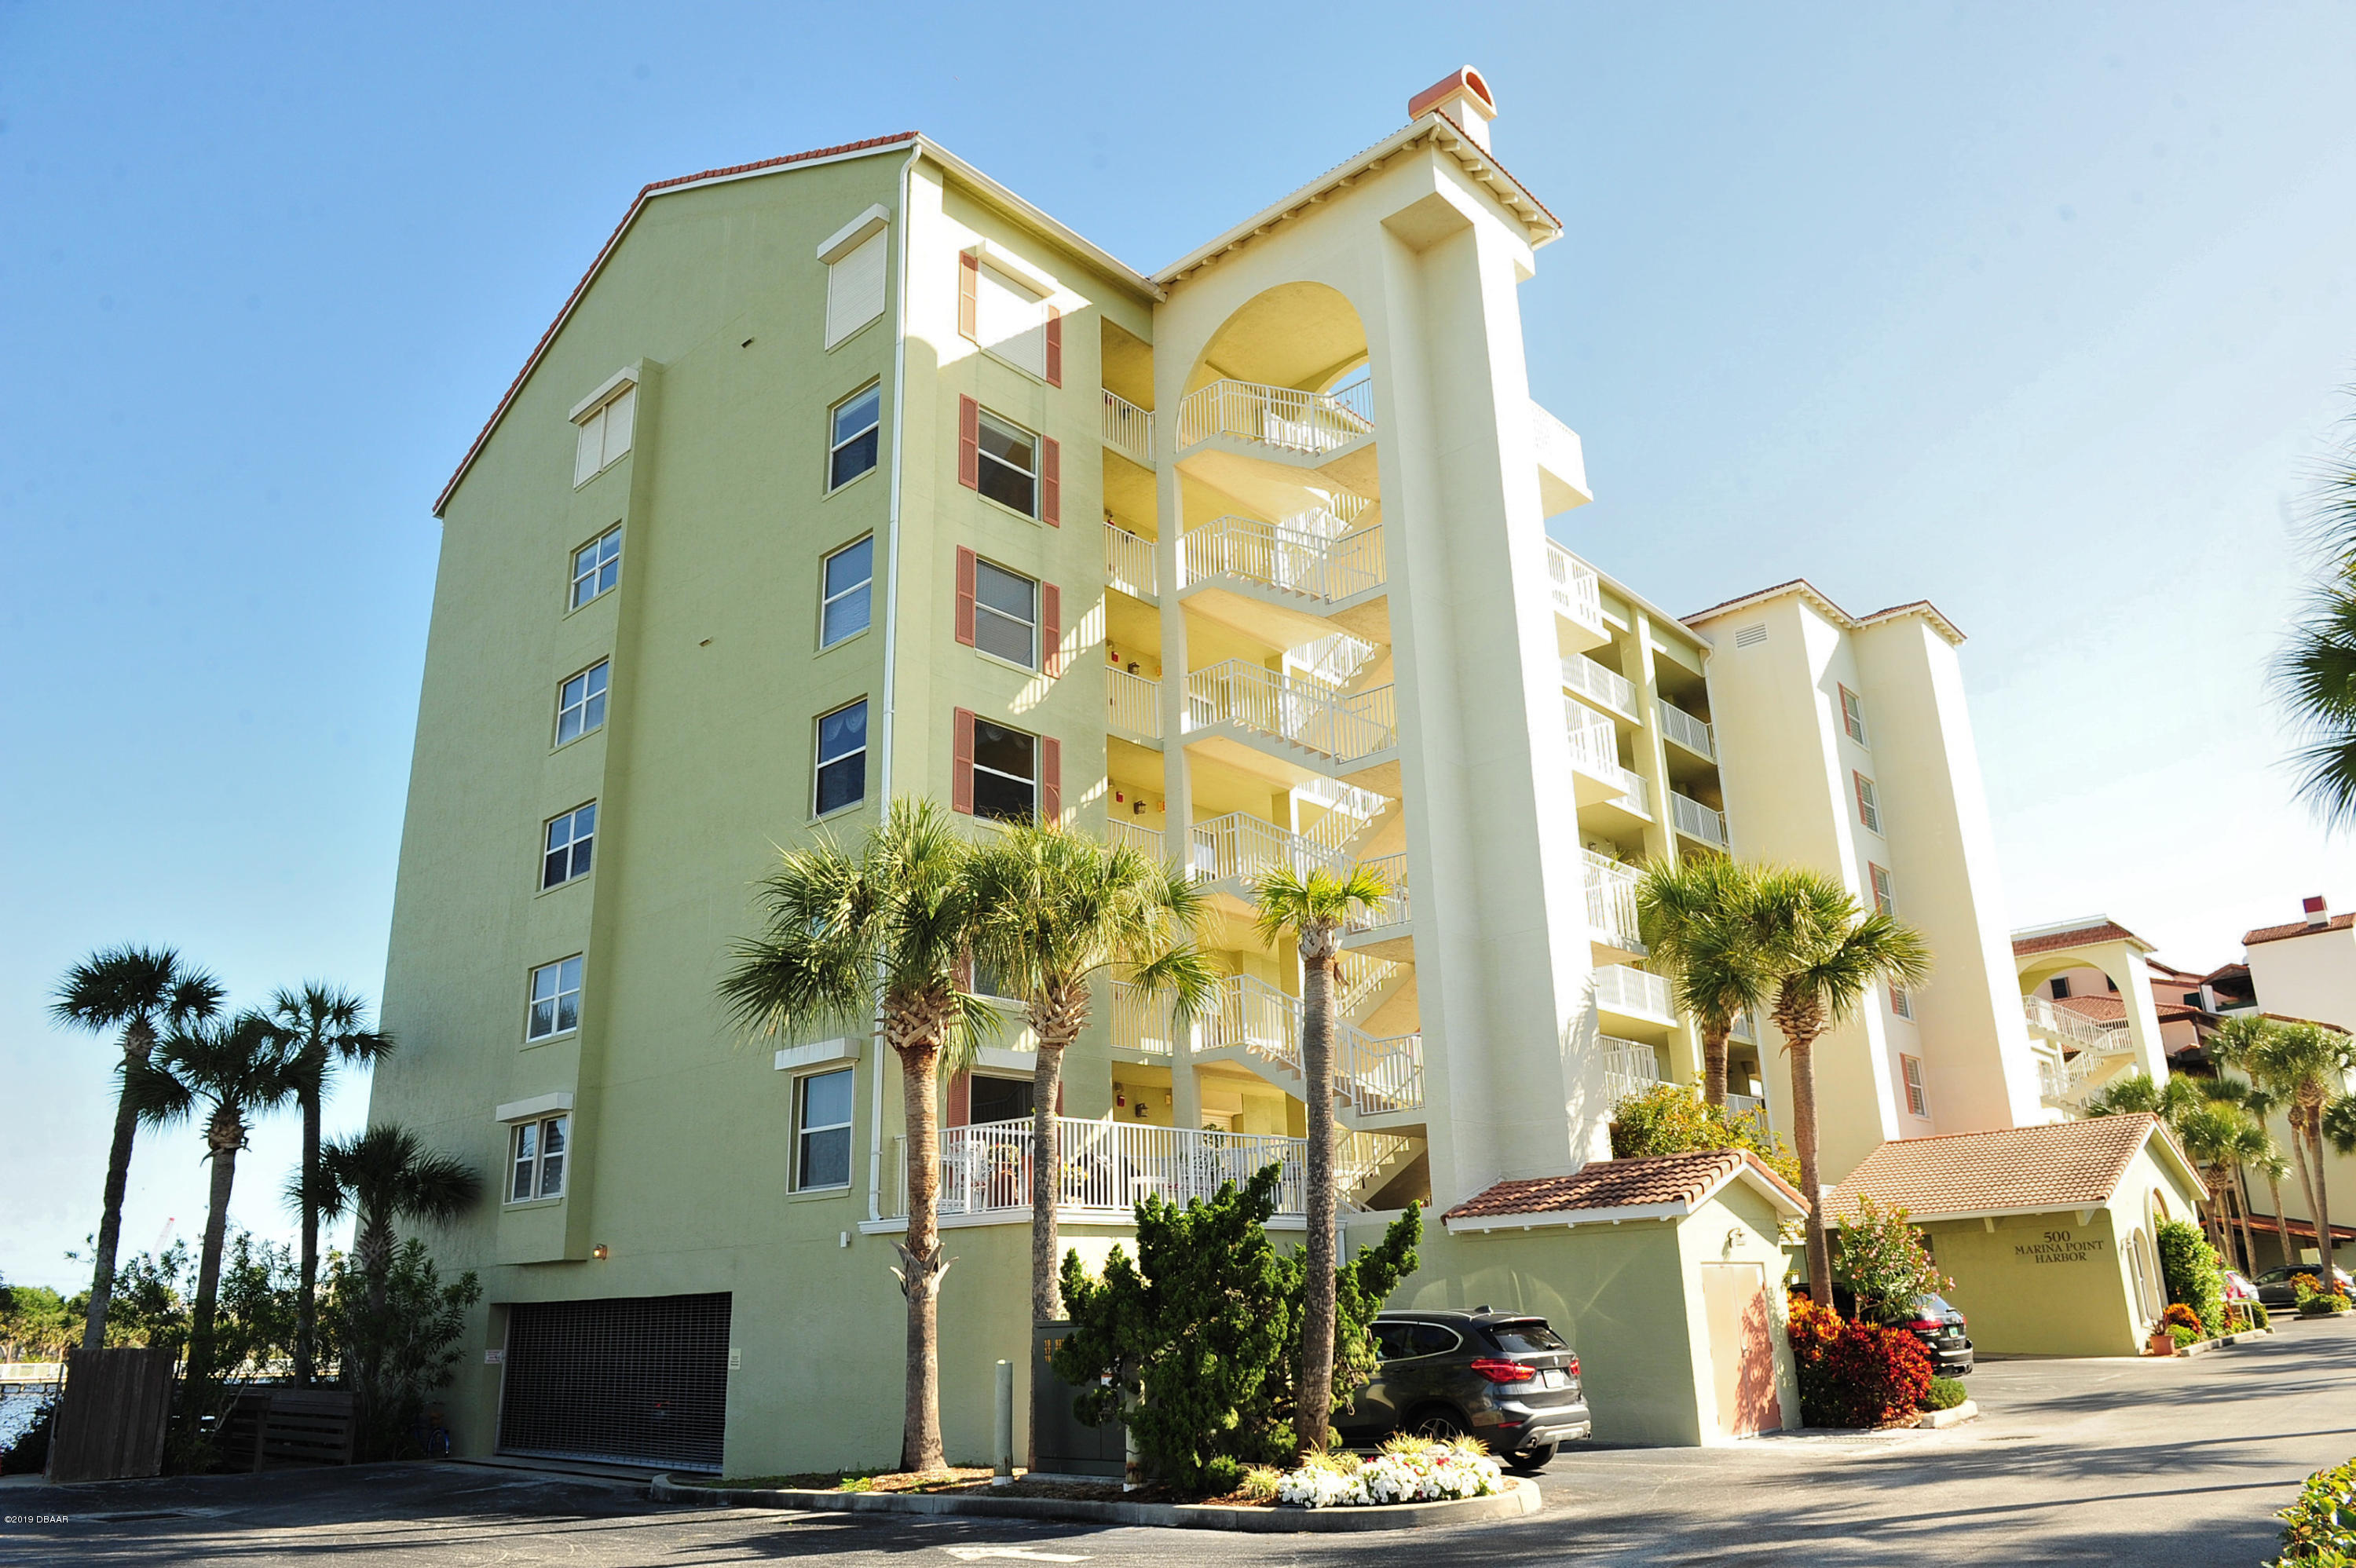 561 Marina Point Daytona Beach - 2